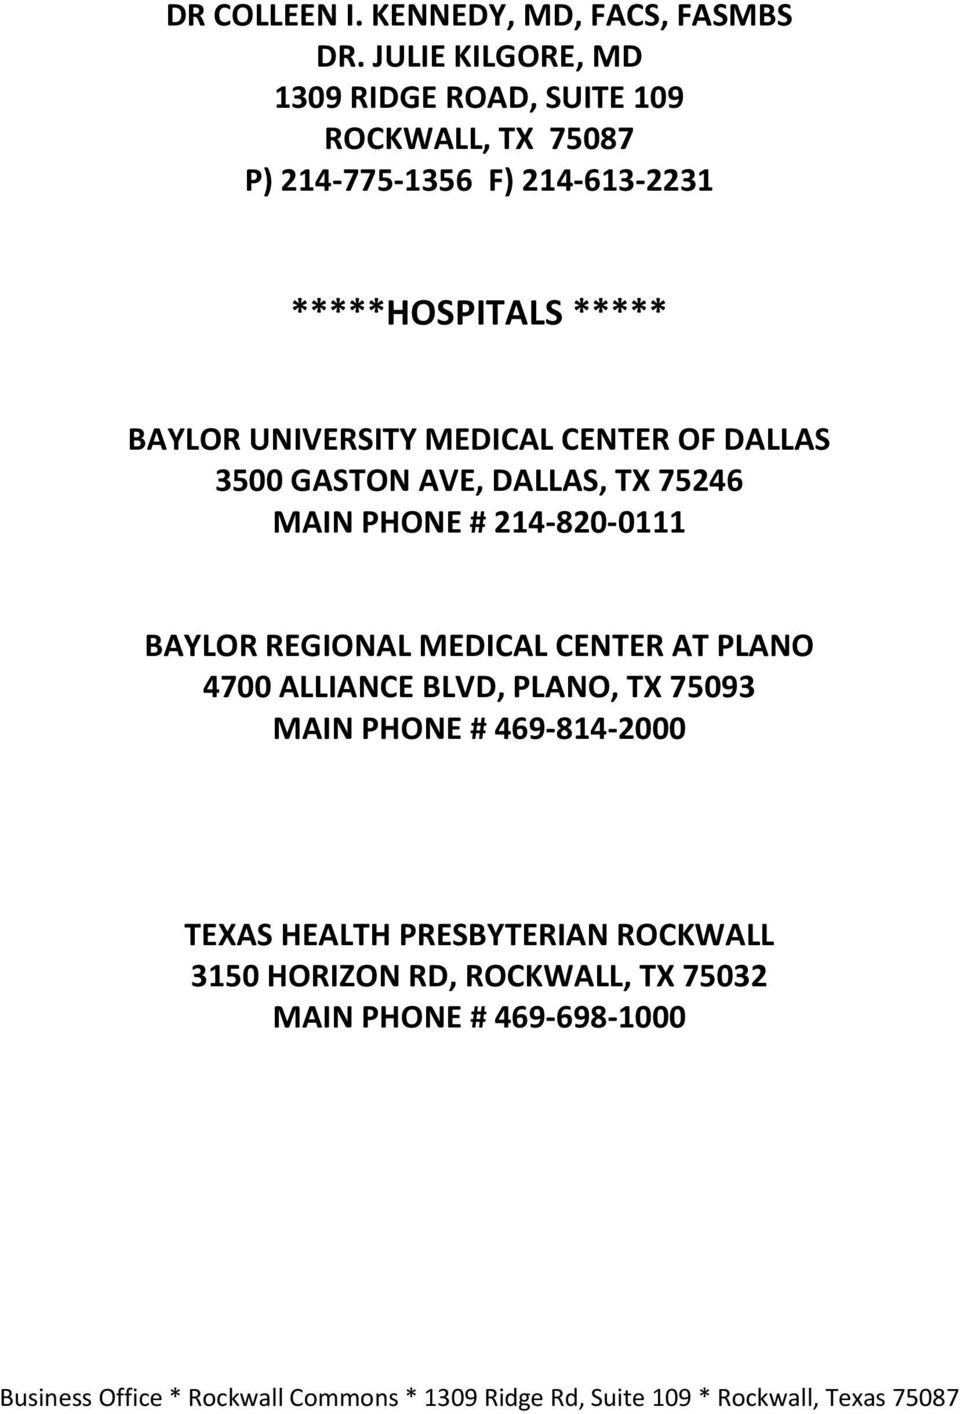 MAIN PHONE # 469-814-2000 TEXAS HEALTH PRESBYTERIAN ROCKWALL 3150 HORIZON RD, ROCKWALL, TX 75032 MAIN